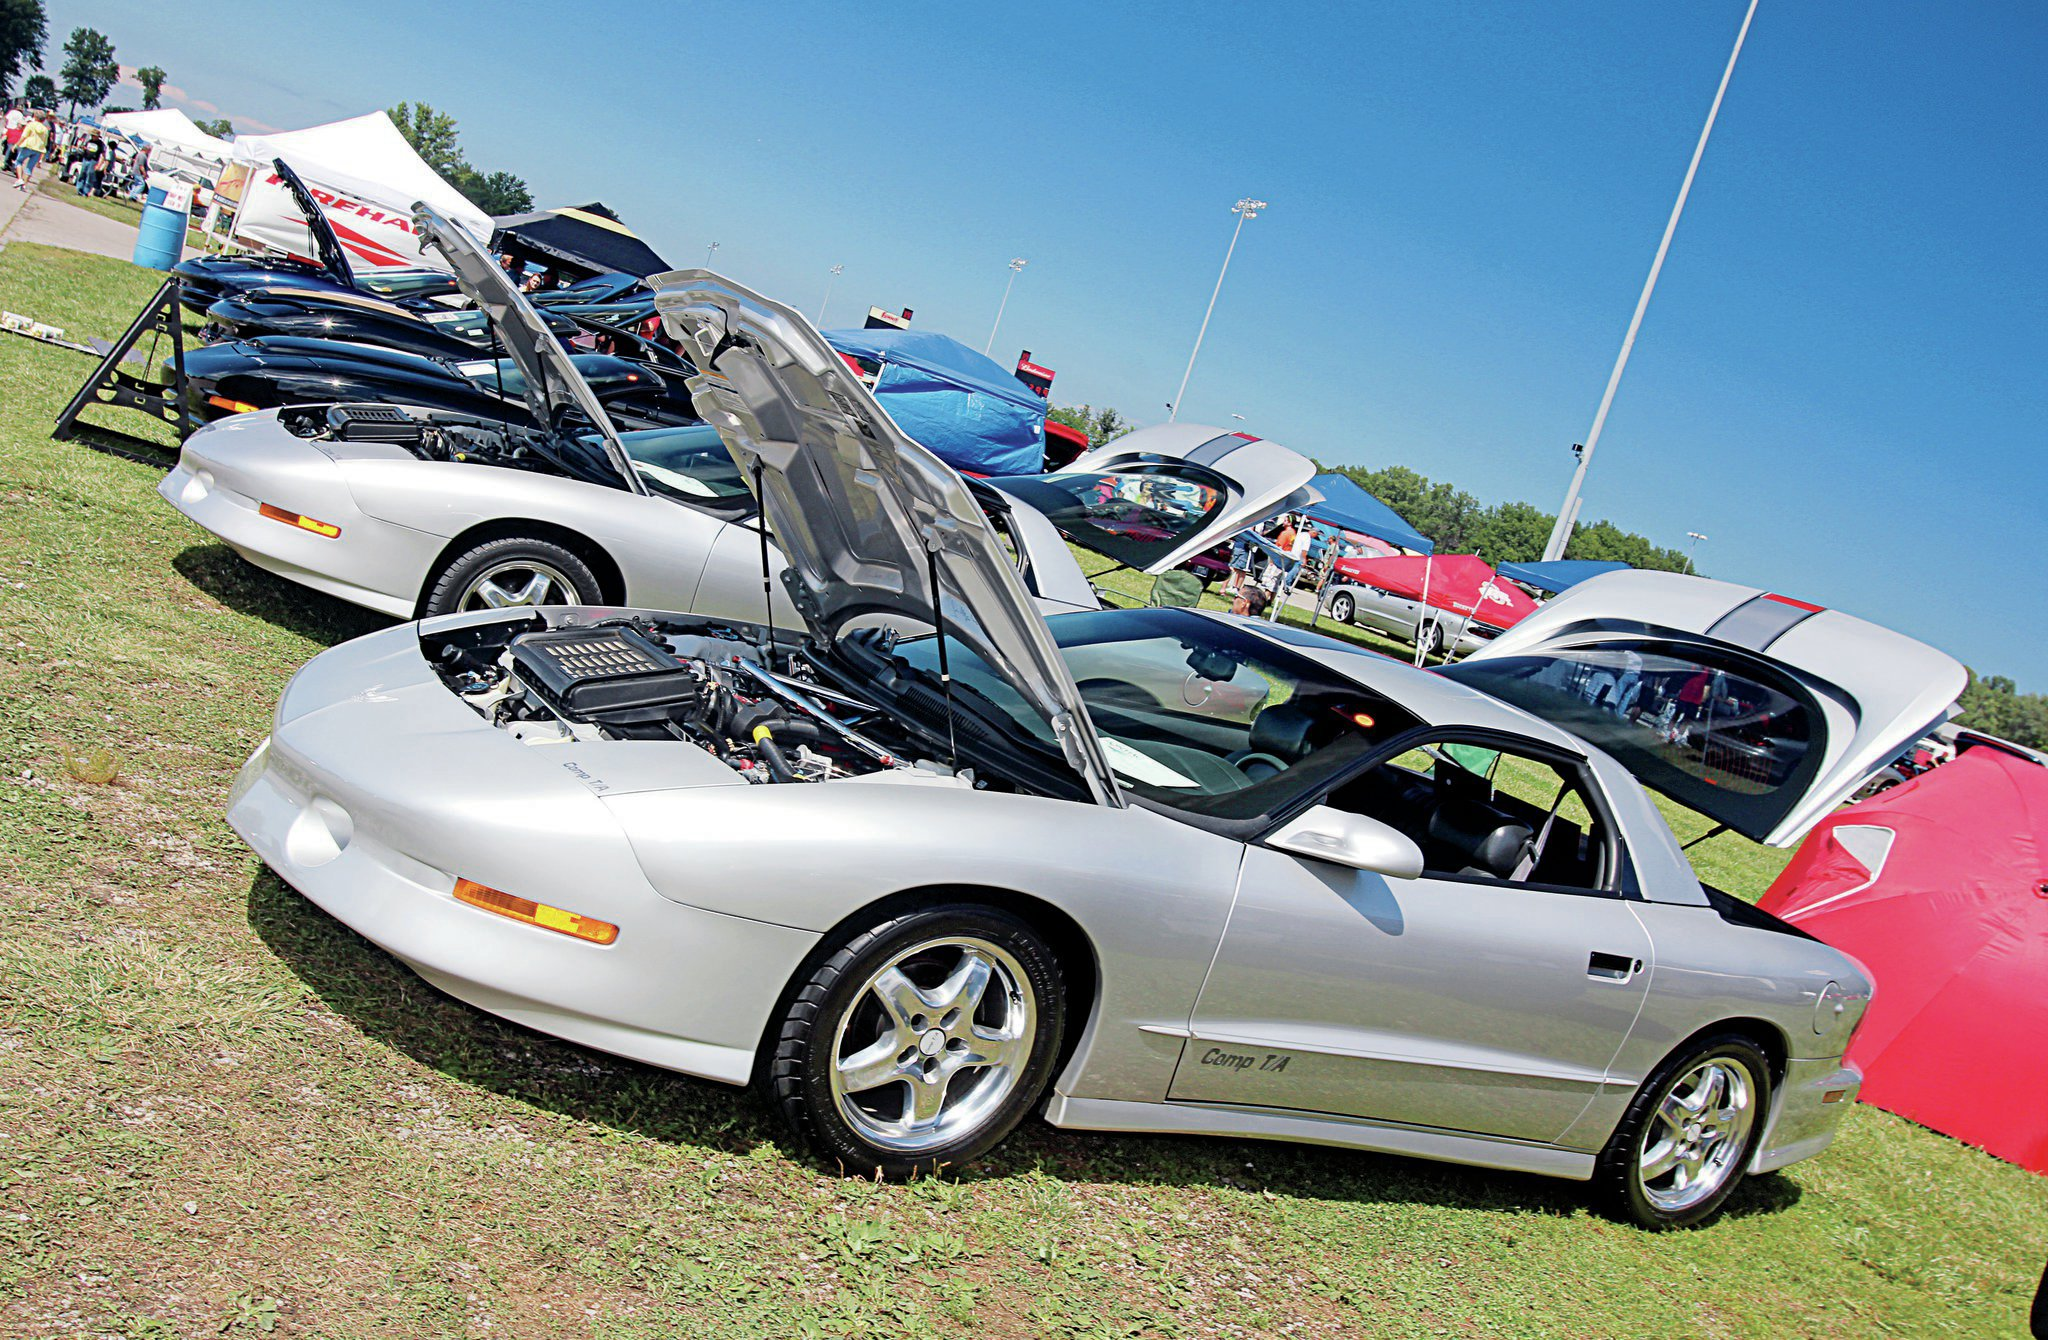 The Firehawk Association of America hosts its own annual show as part of the Ames Performance Tri-Power Pontiac Nationals. This is the largest gathering of Comp T/As and Firehawks anywhere since they left SLP. Kevin and Sarah Day brought their '95 Comp T/A from Jackson, Michigan, to participate.